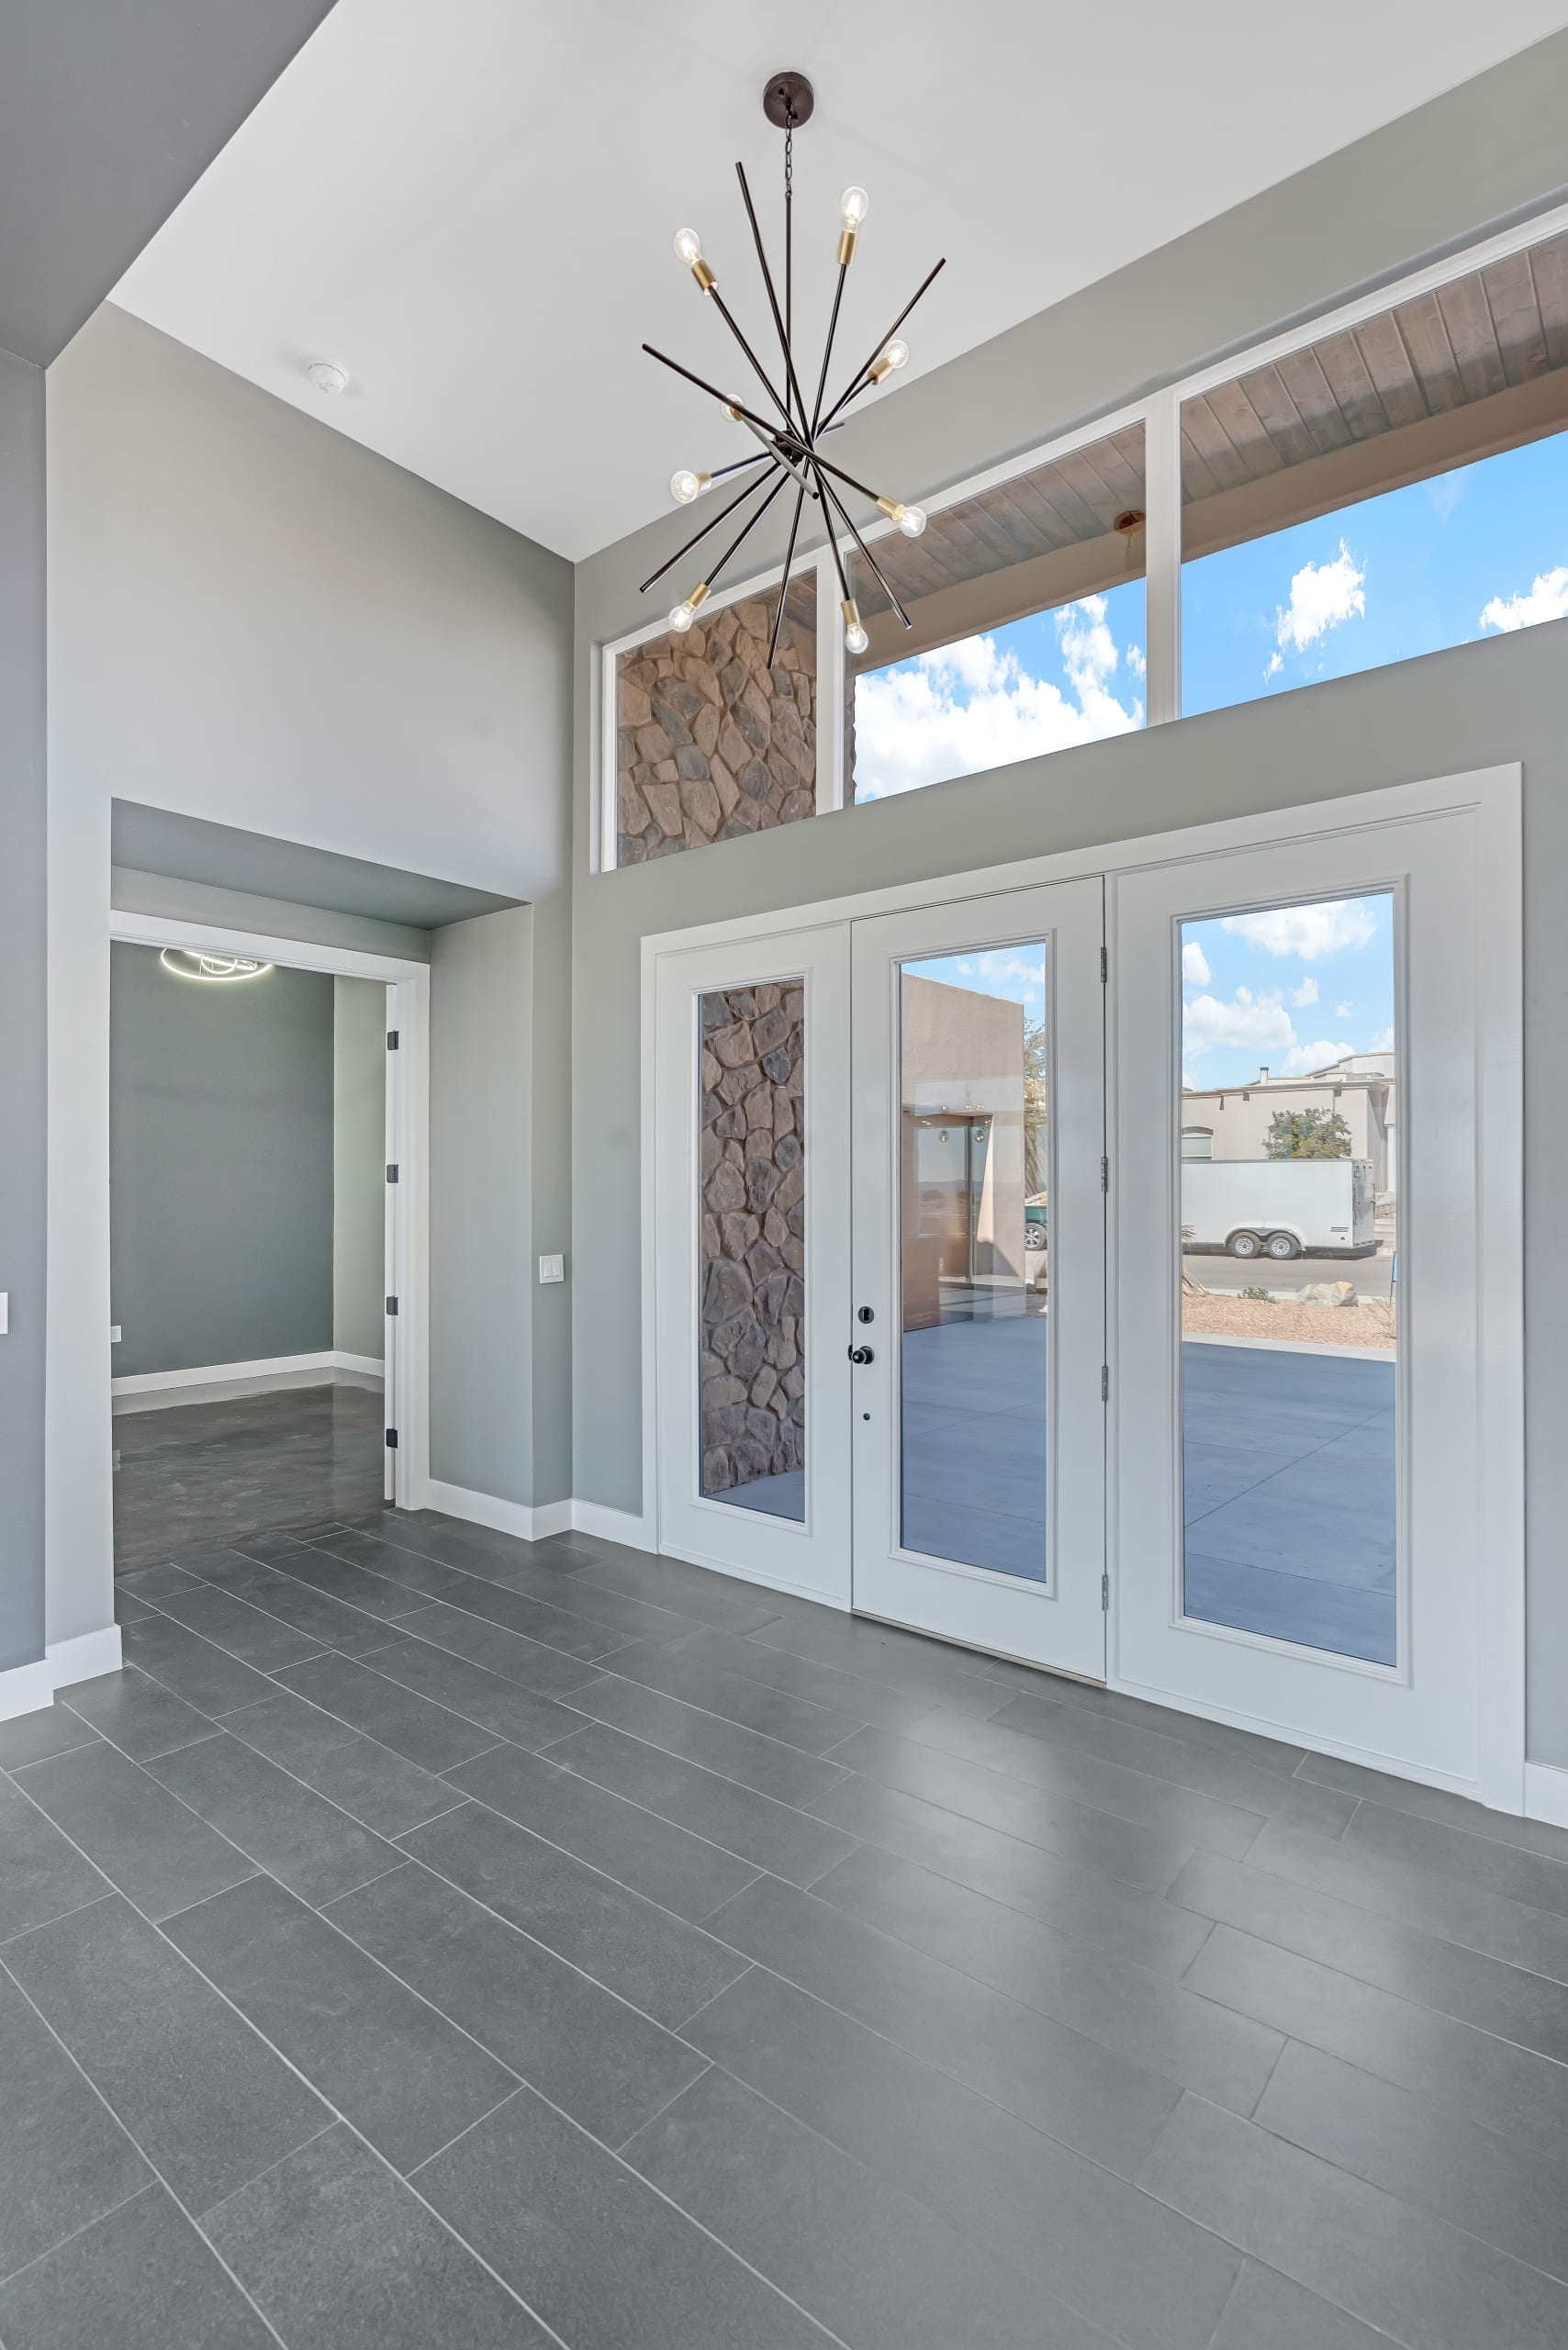 2914 East Spring Entrance Way - French Doors - Large Glass paned door